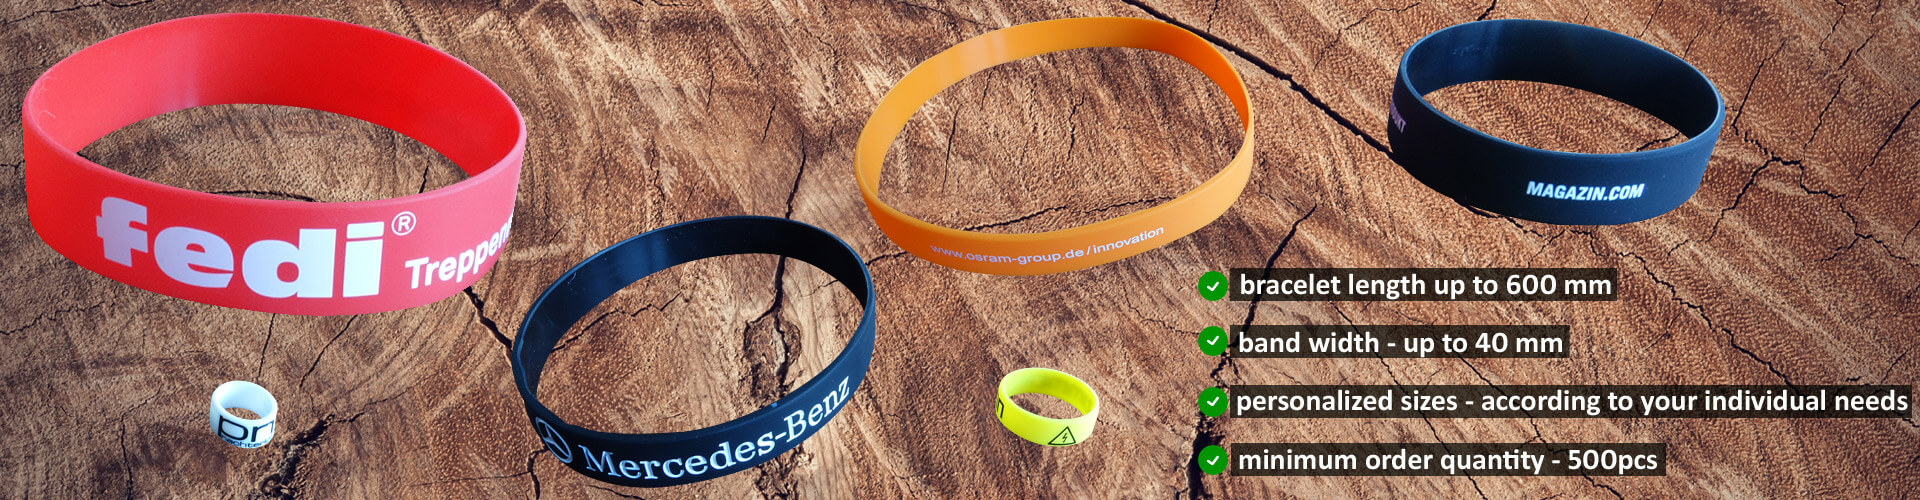 silicone bands personalized sizes